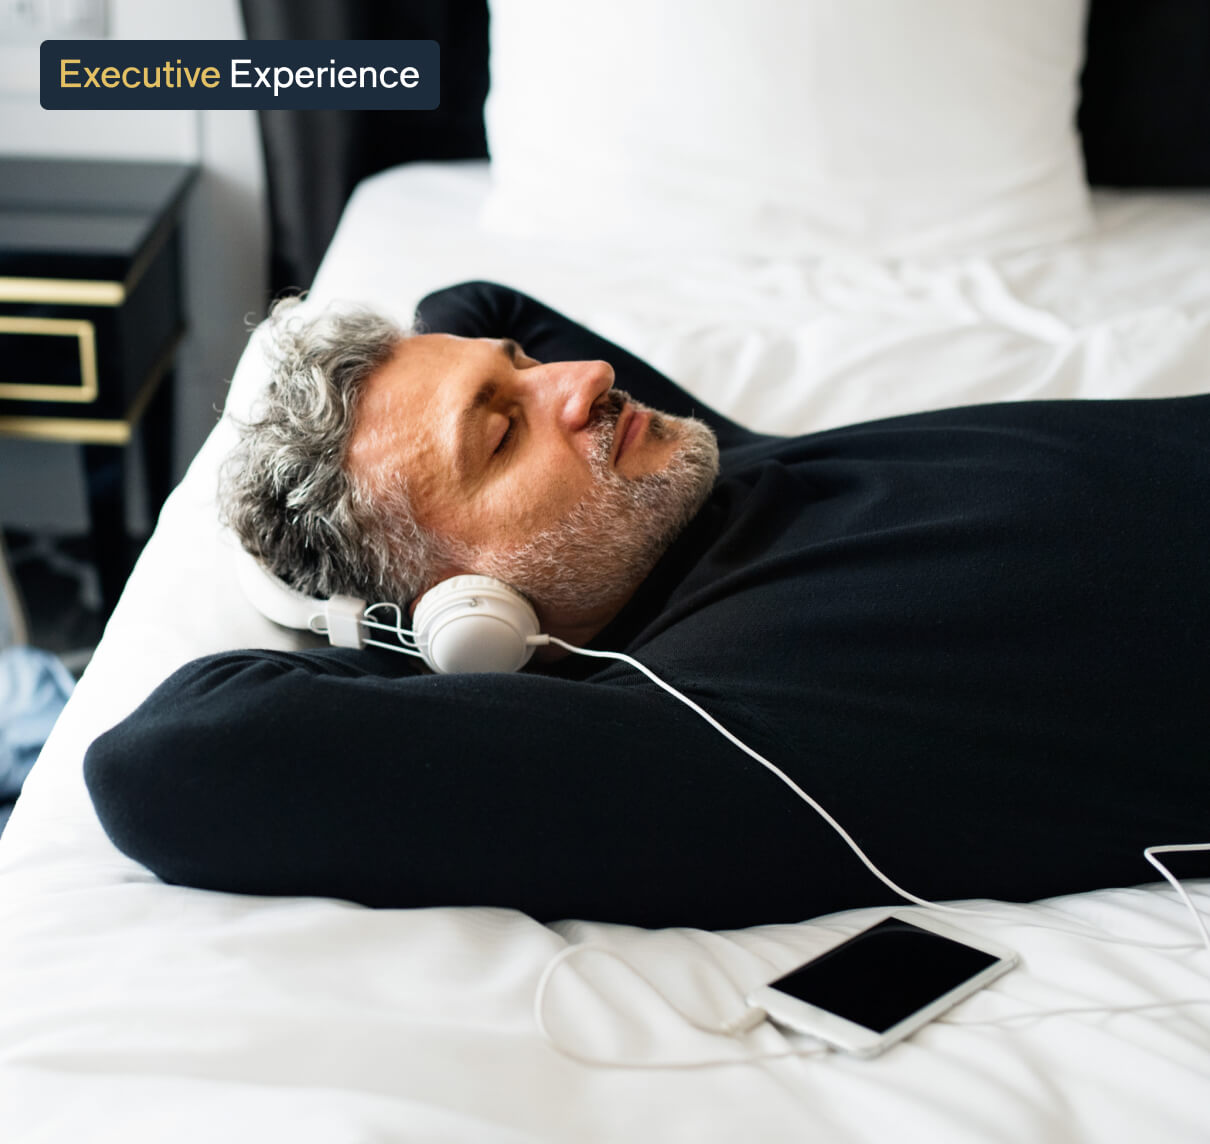 Man resting with headphones